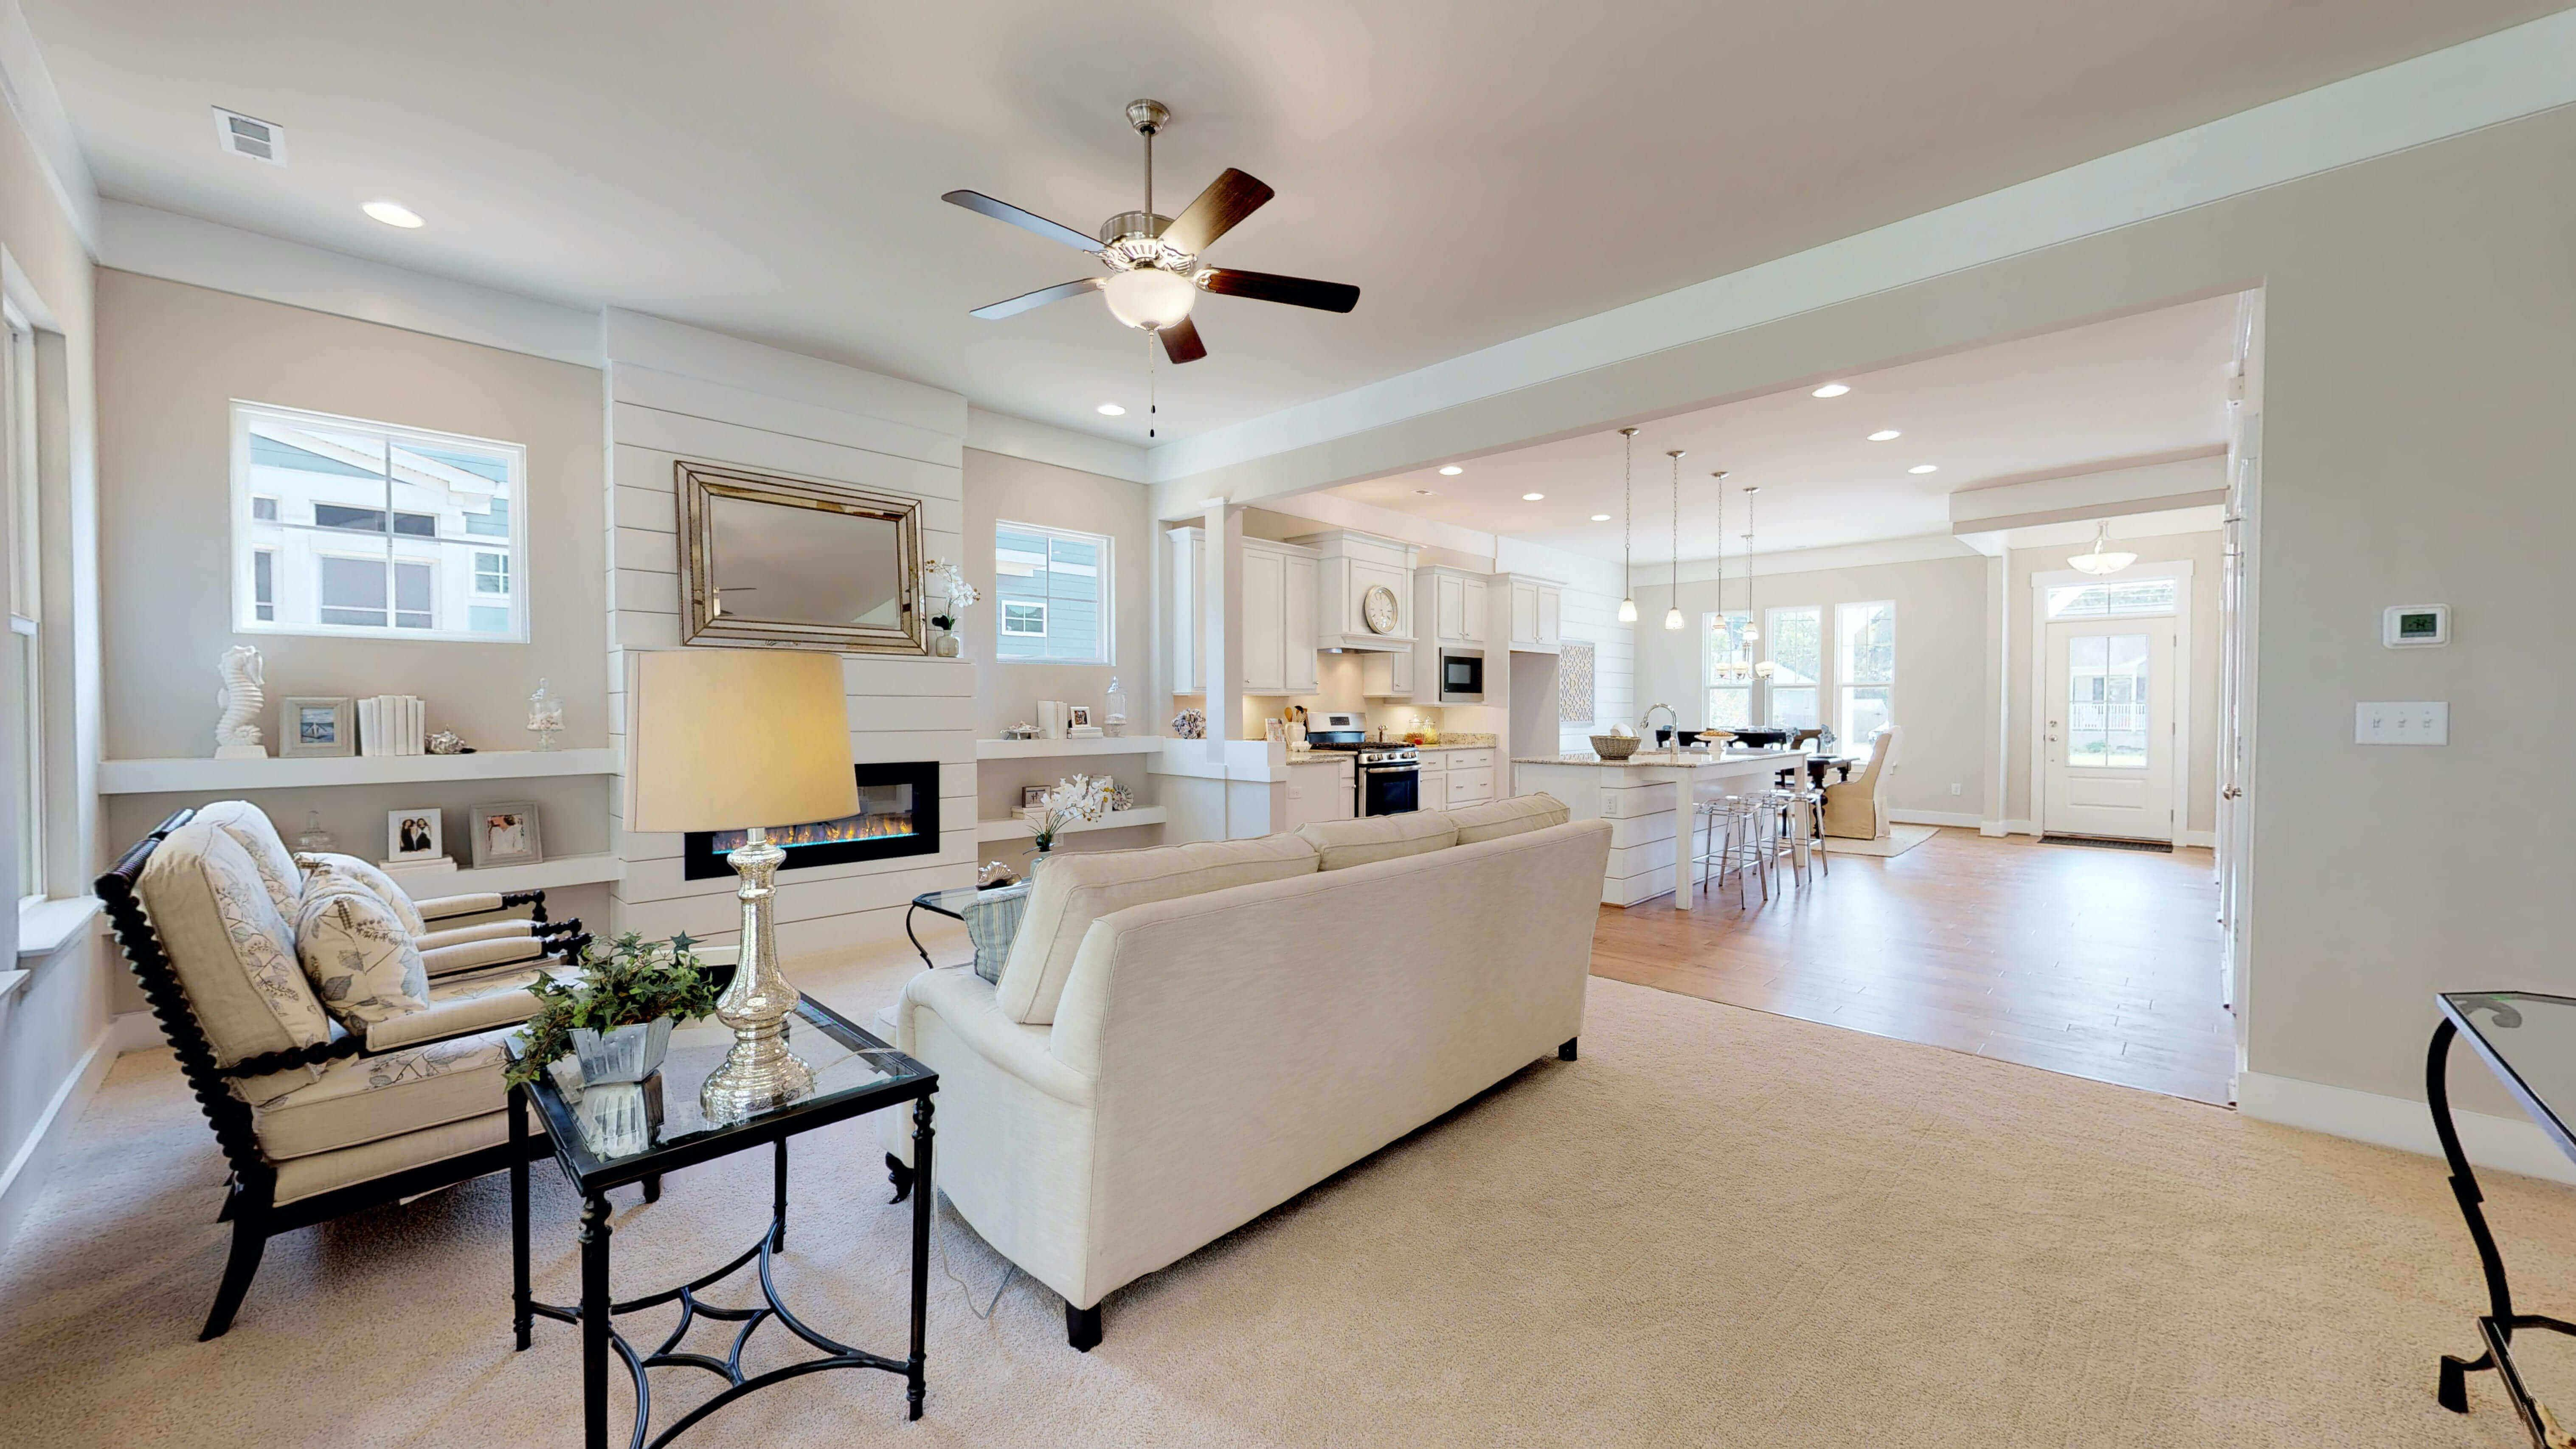 Living Area featured in the Cape Charles By Stephen Alexander Homes in Outer Banks, NC